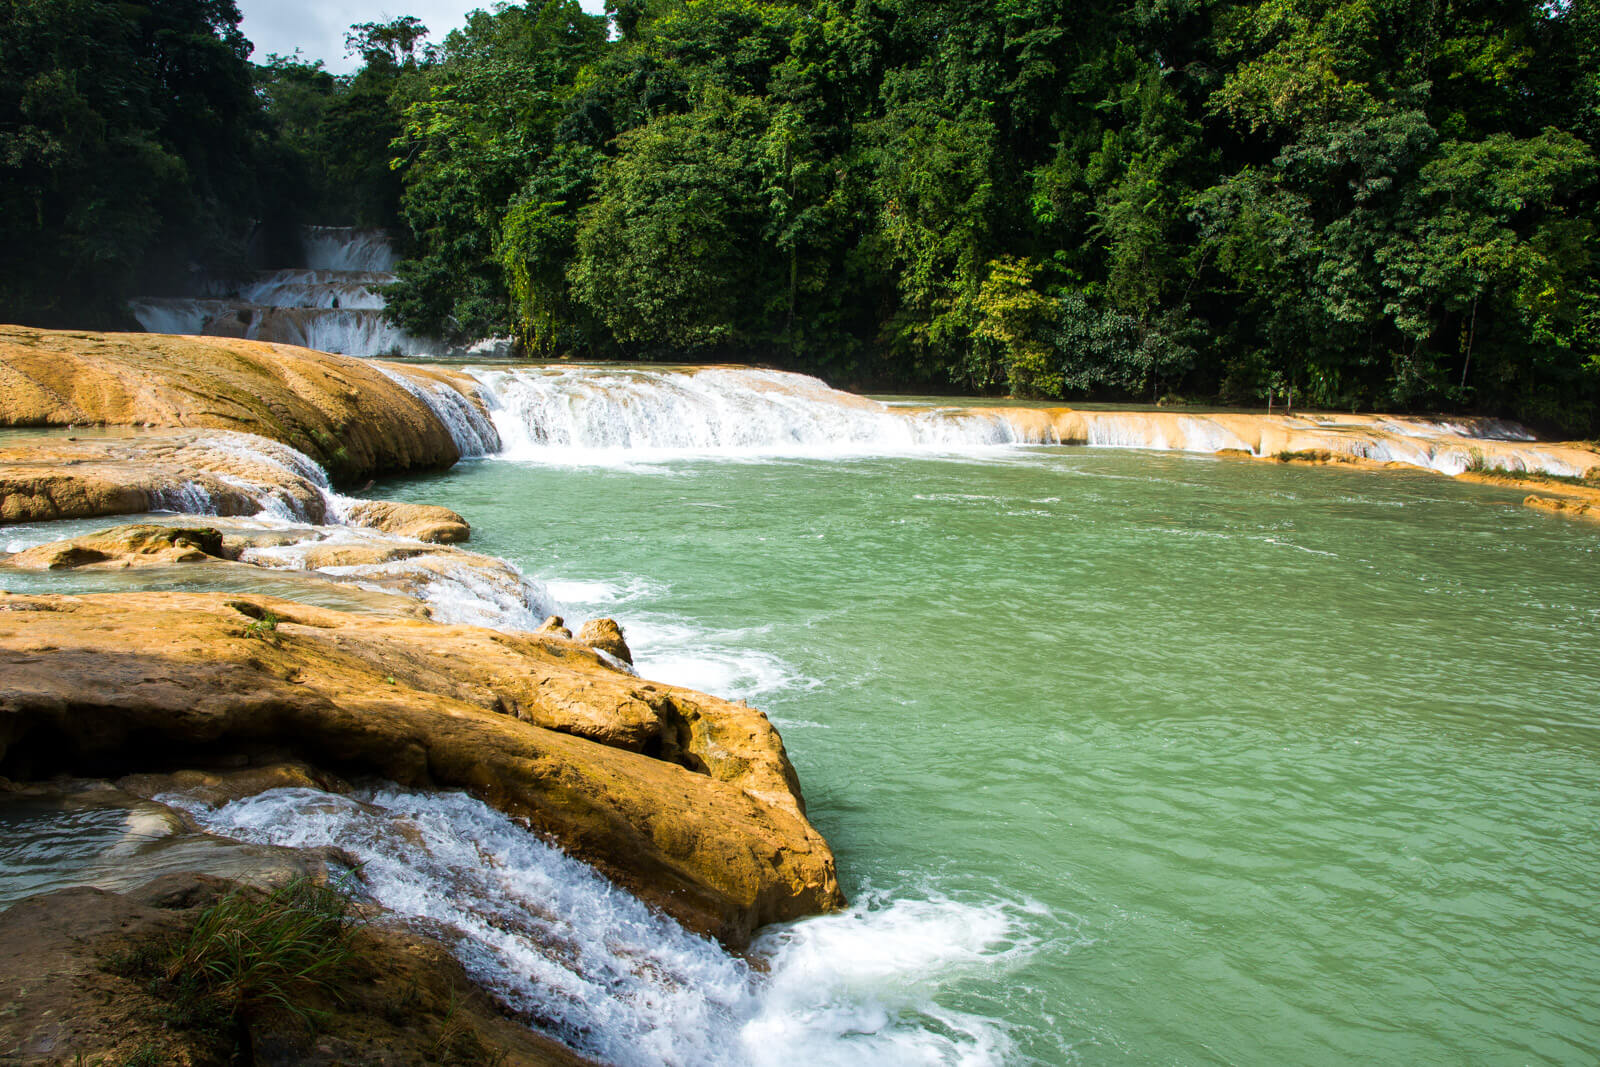 The Agua Azul Waterfalls of Chiapas